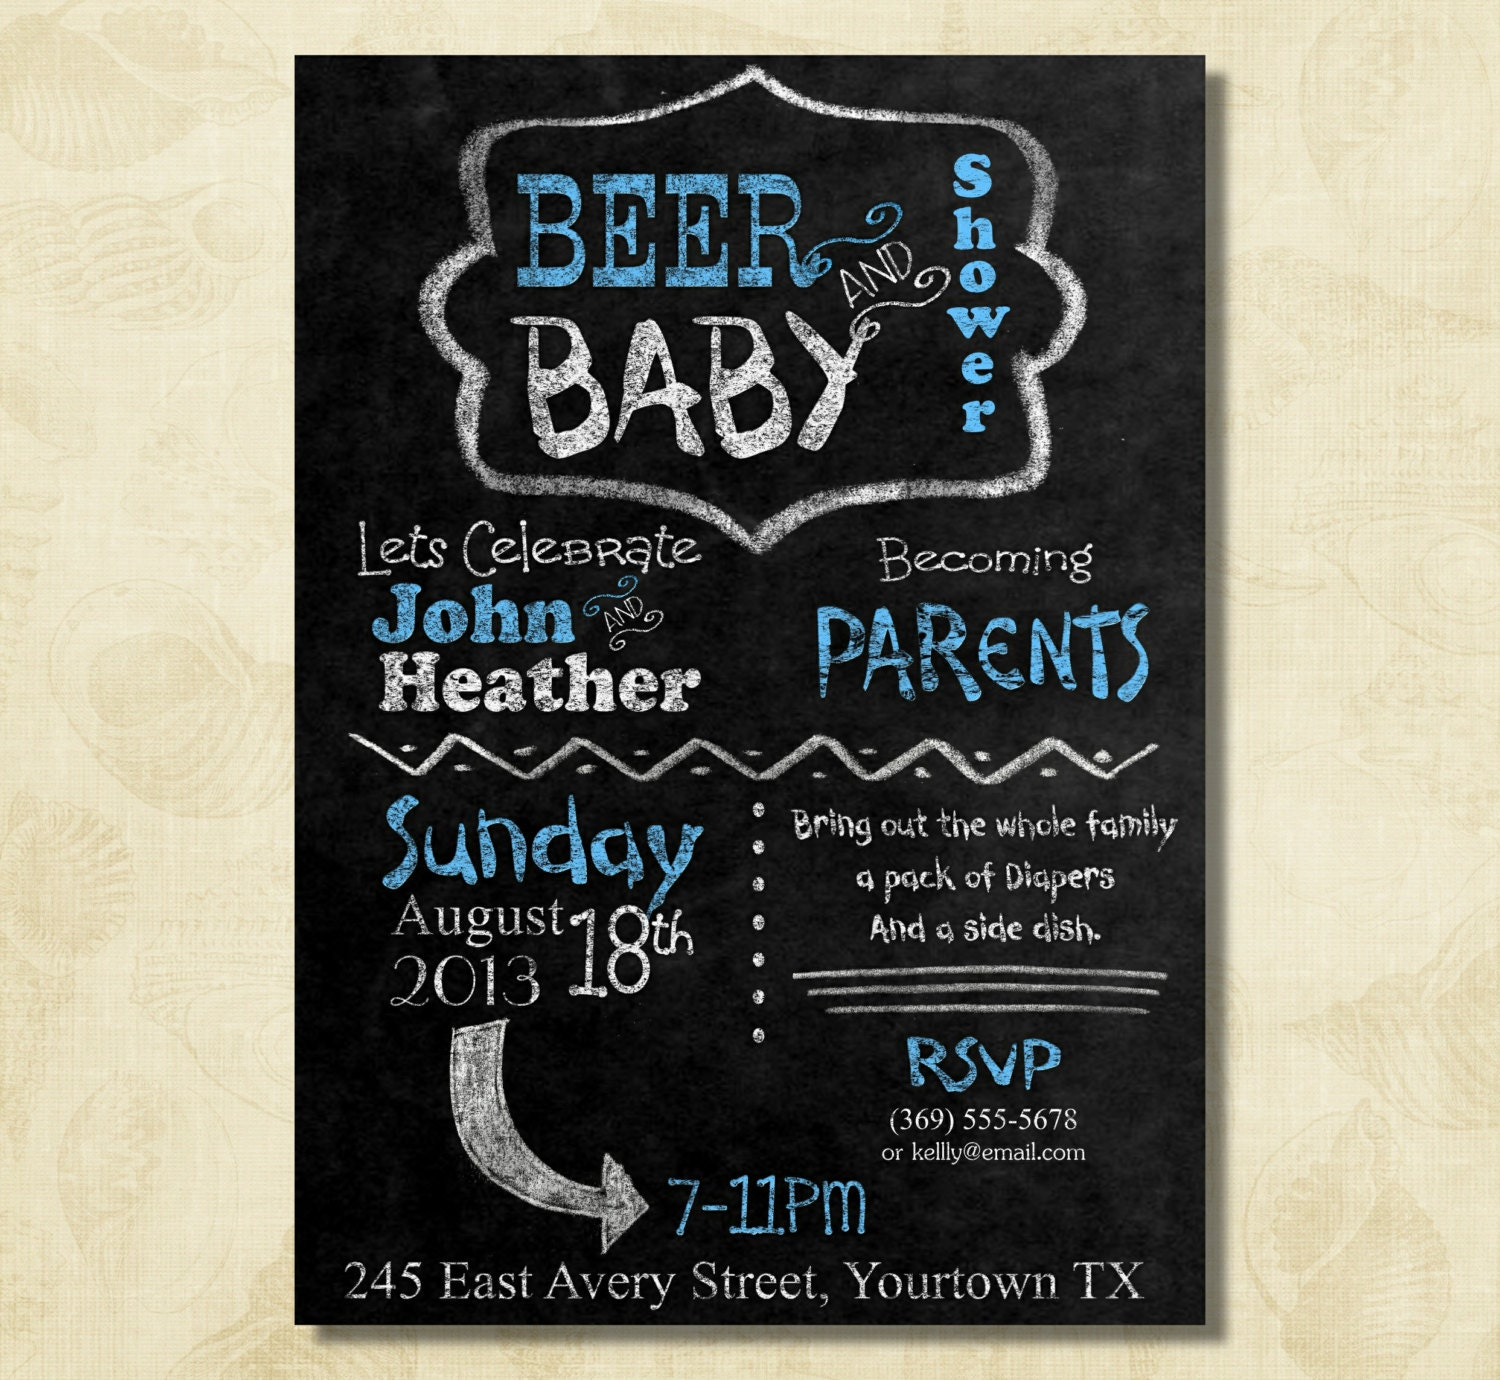 blue bbq and diaper party couple dad baby shower invitation